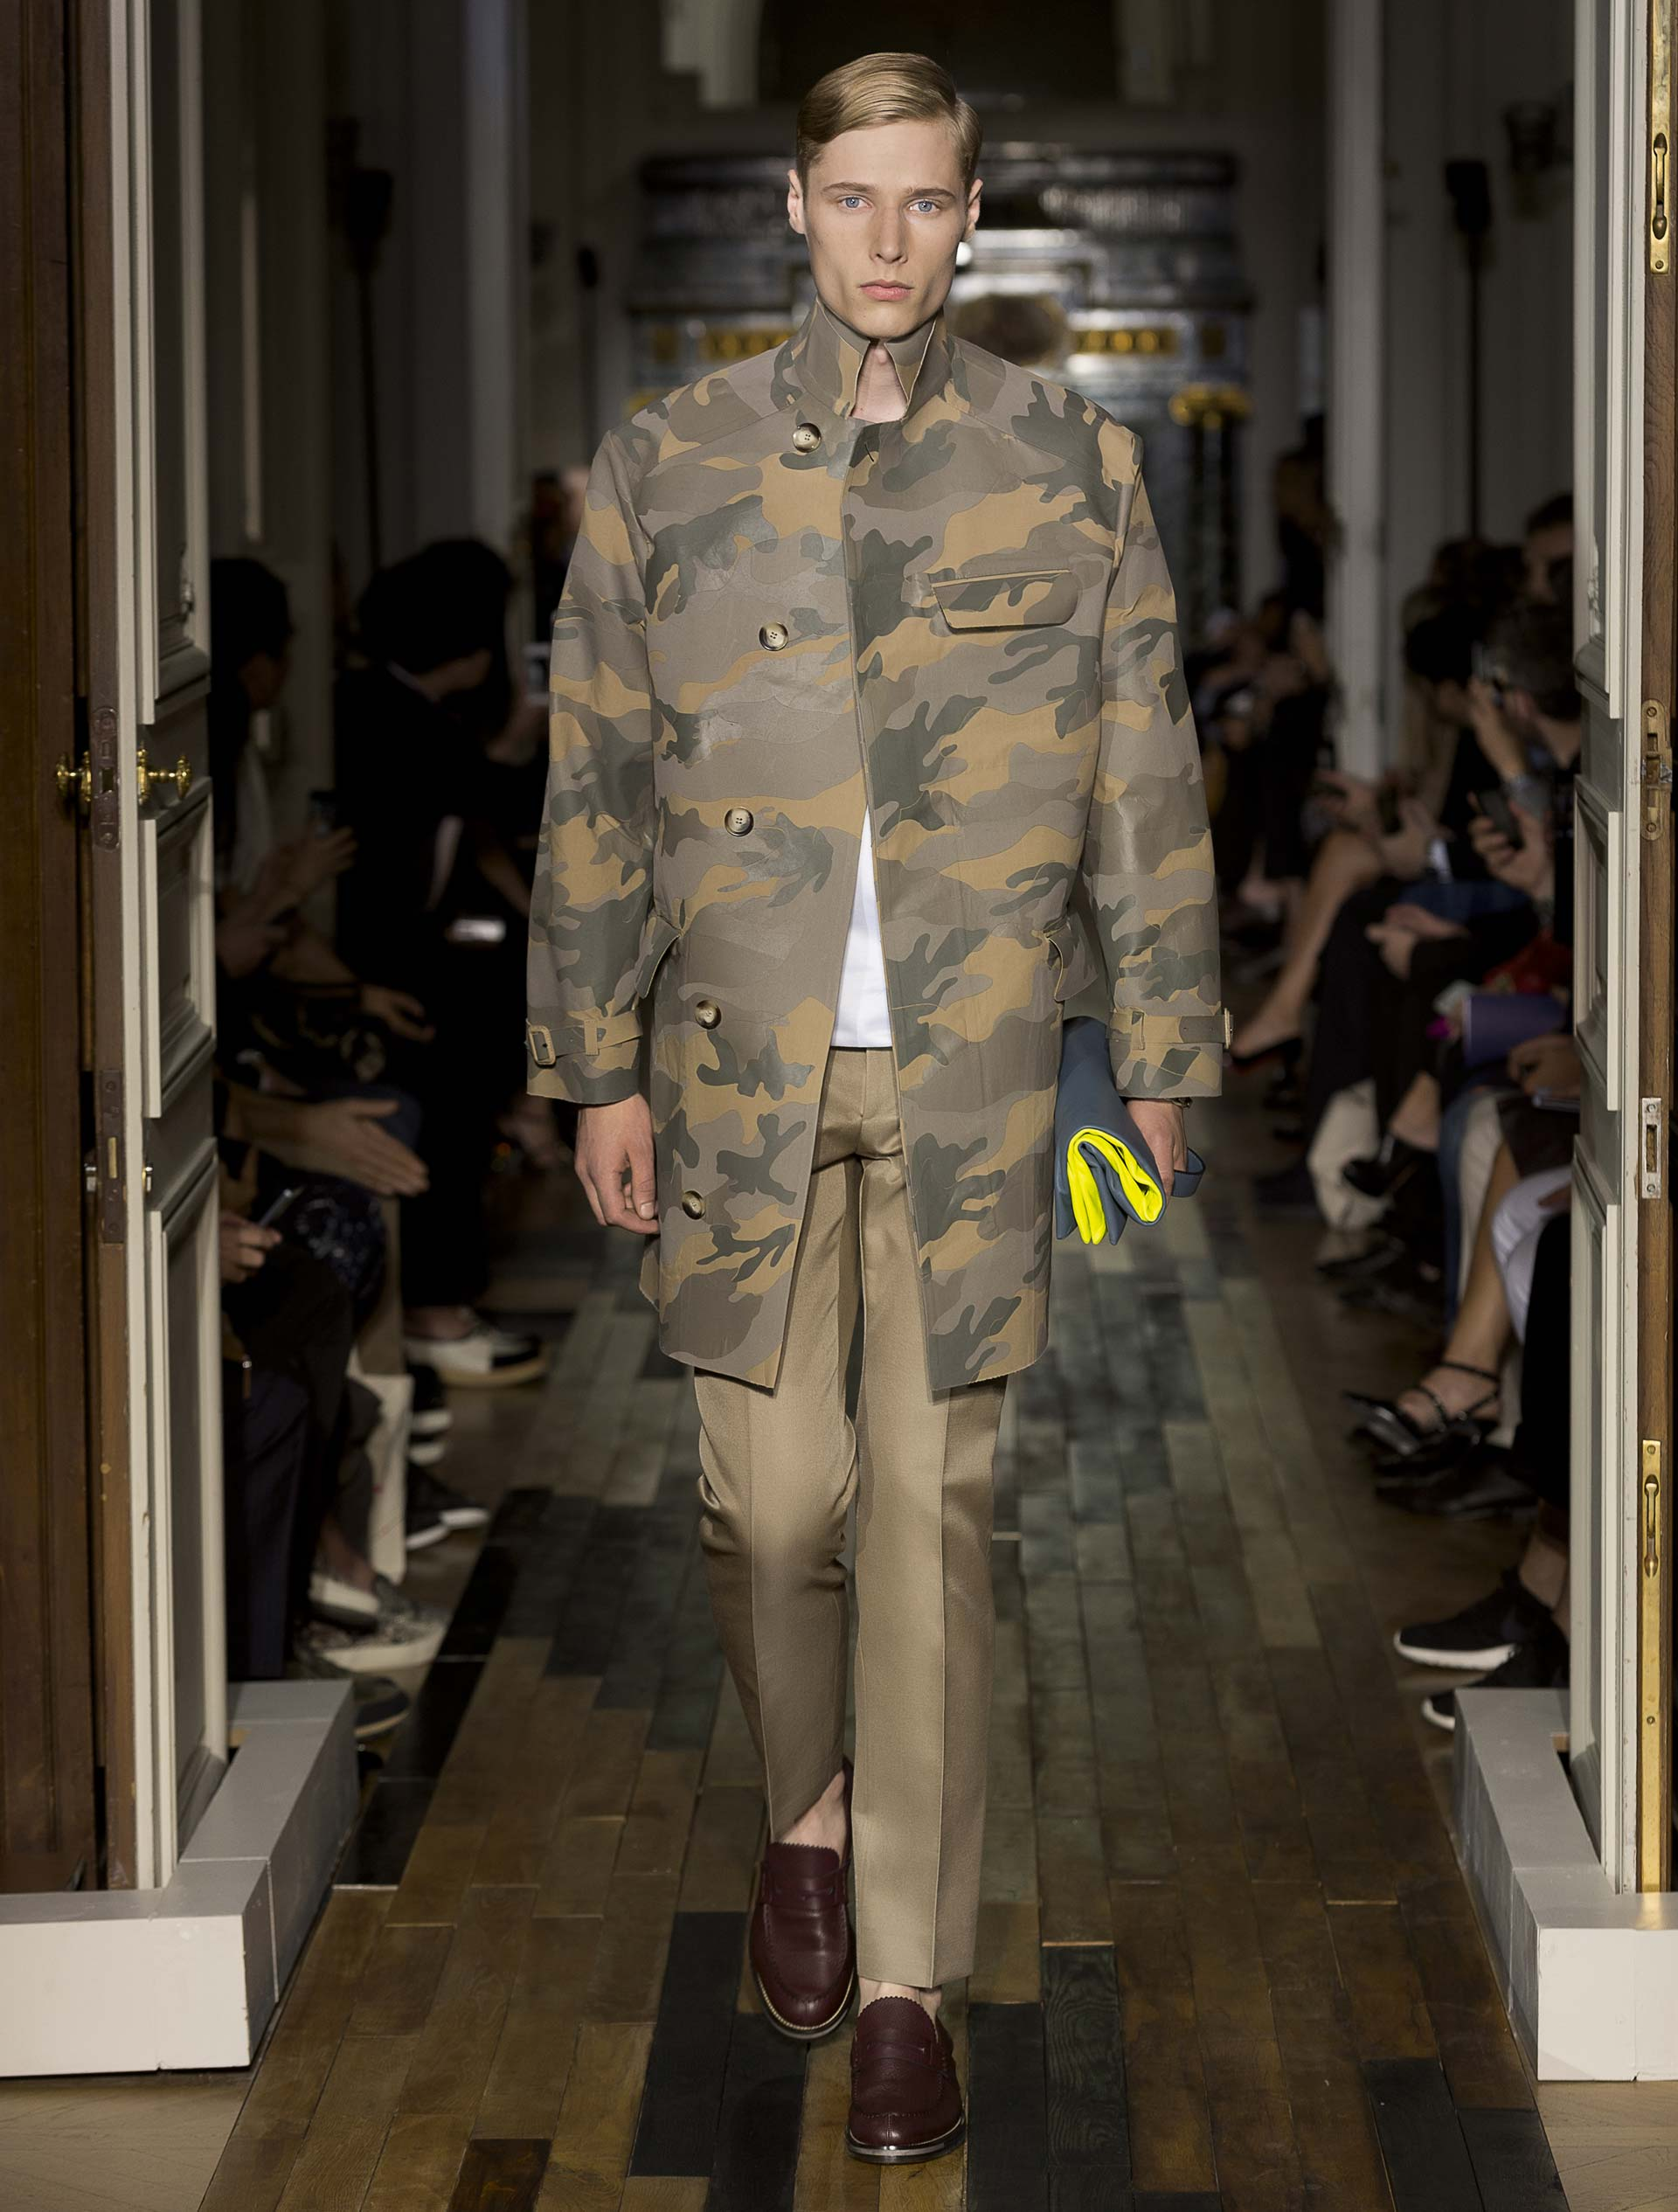 Valentino Spring/Summer '14 Menswear Collection